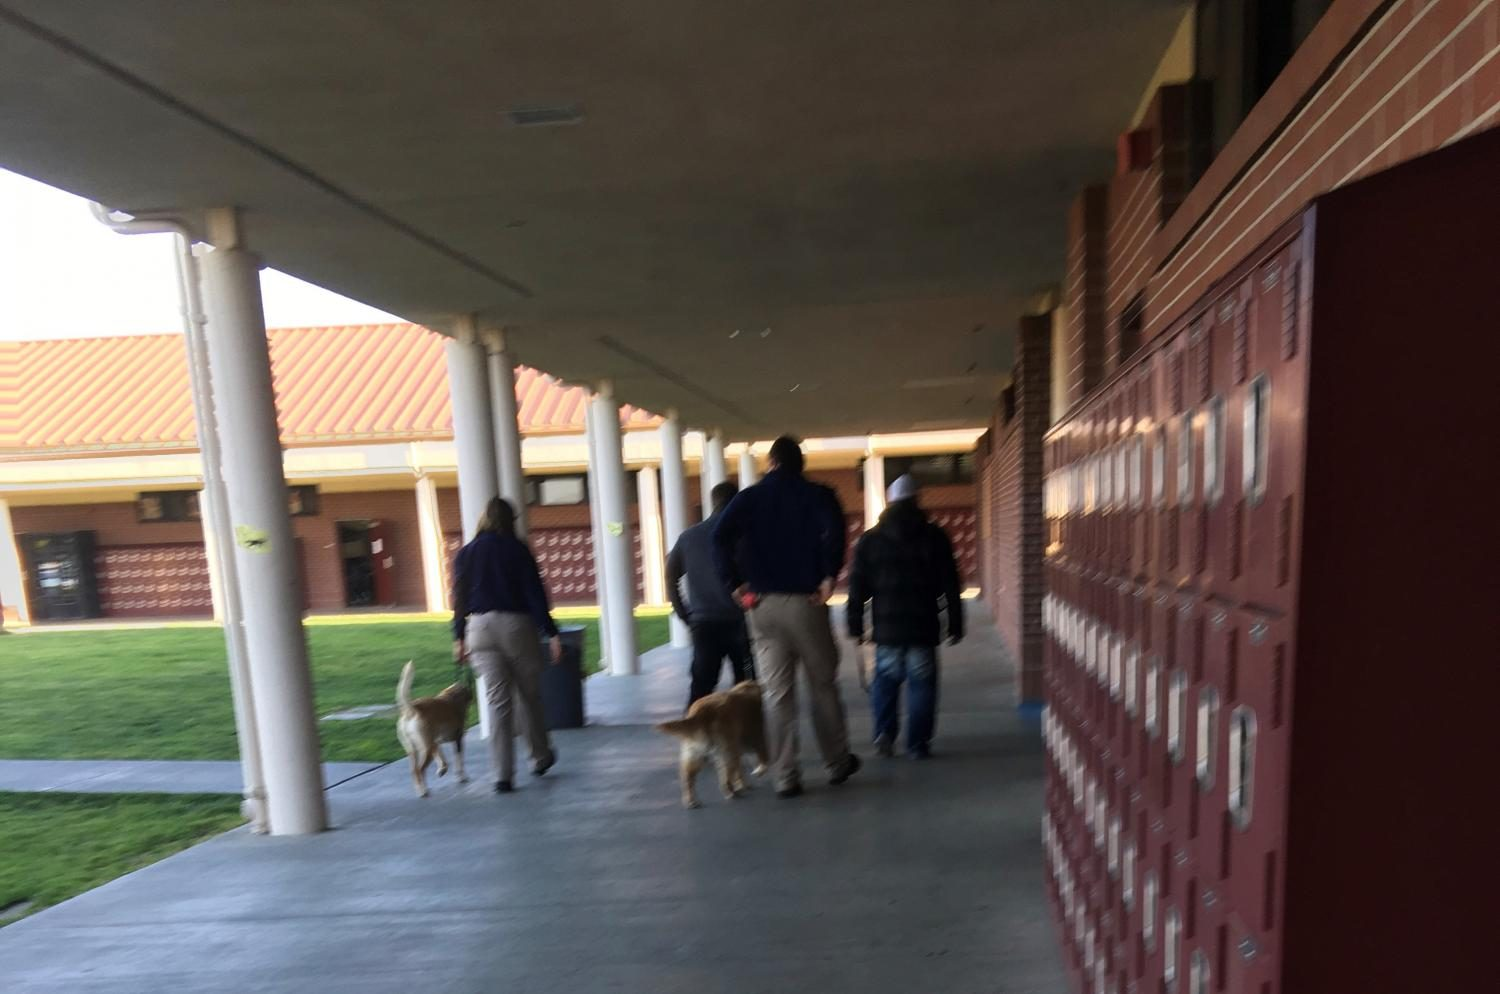 Drug-sniffing+dogs+make+their+way+to+random+classrooms+as+part+of+a+MUSD+program.